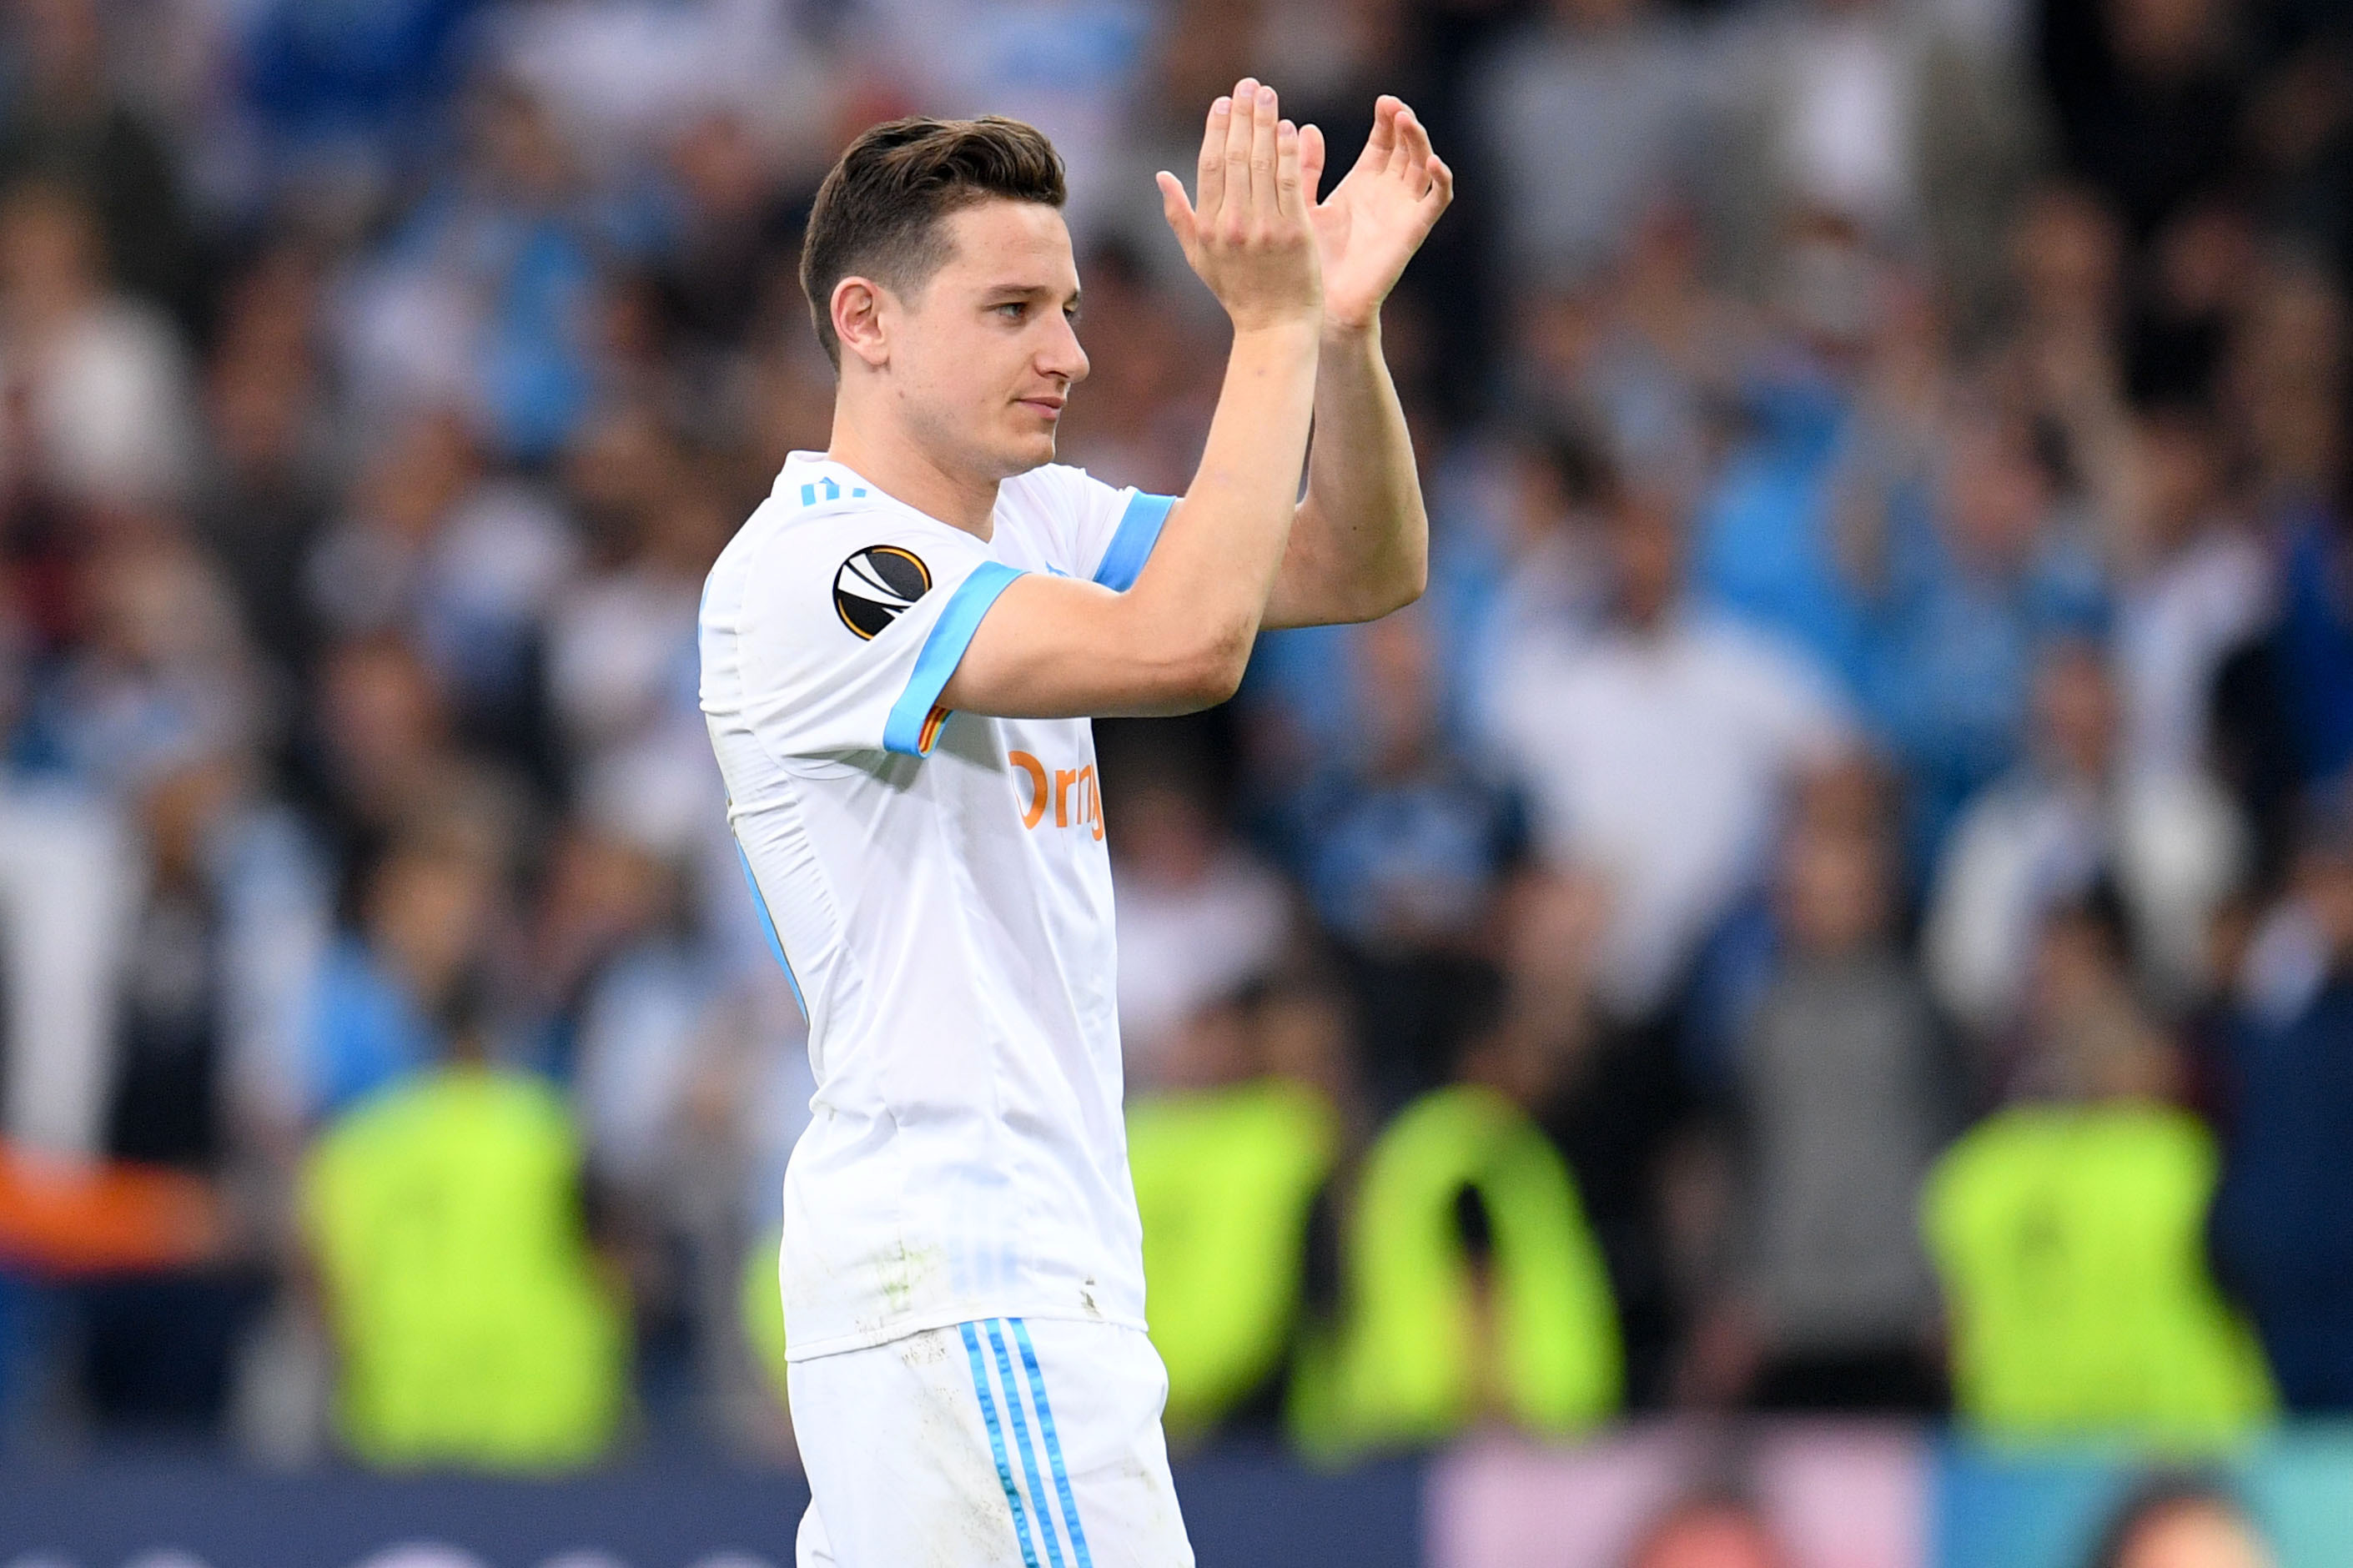 Football - Transferts - Le journal du mercato : Thauvin ne «s'interdit rien» pour son avenir